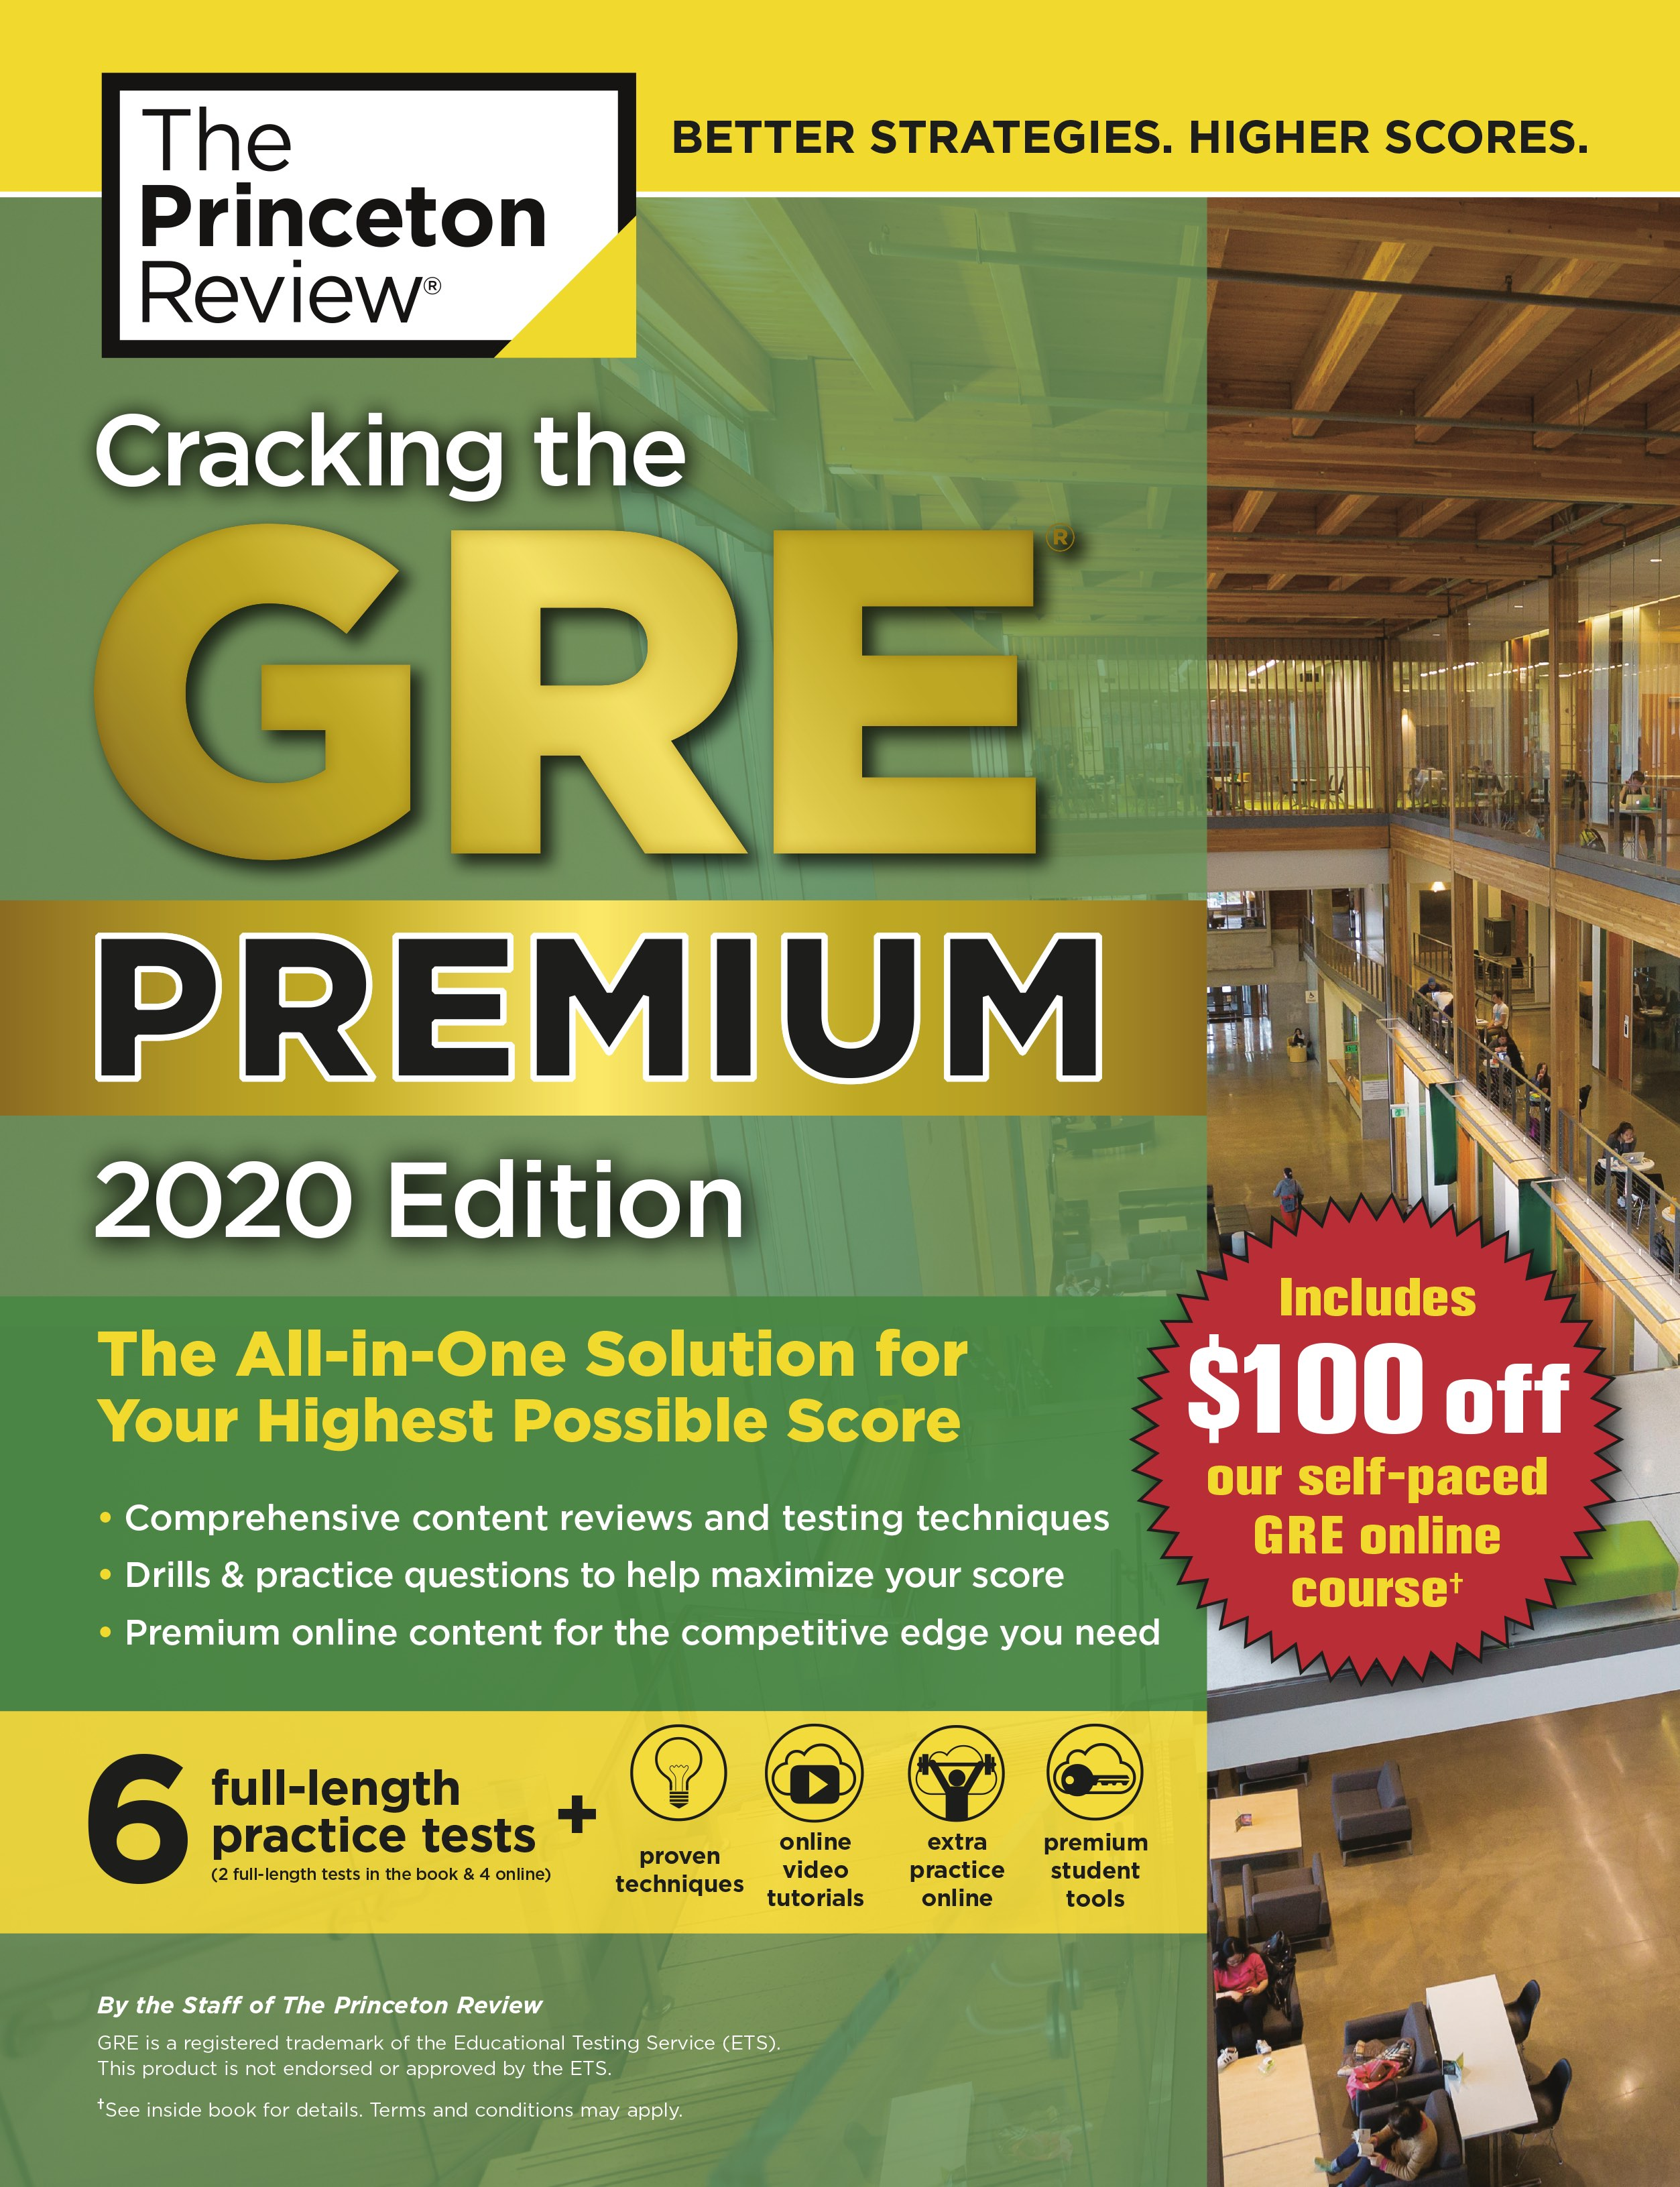 Cracking the GRE Premium The Princeton Review 2020